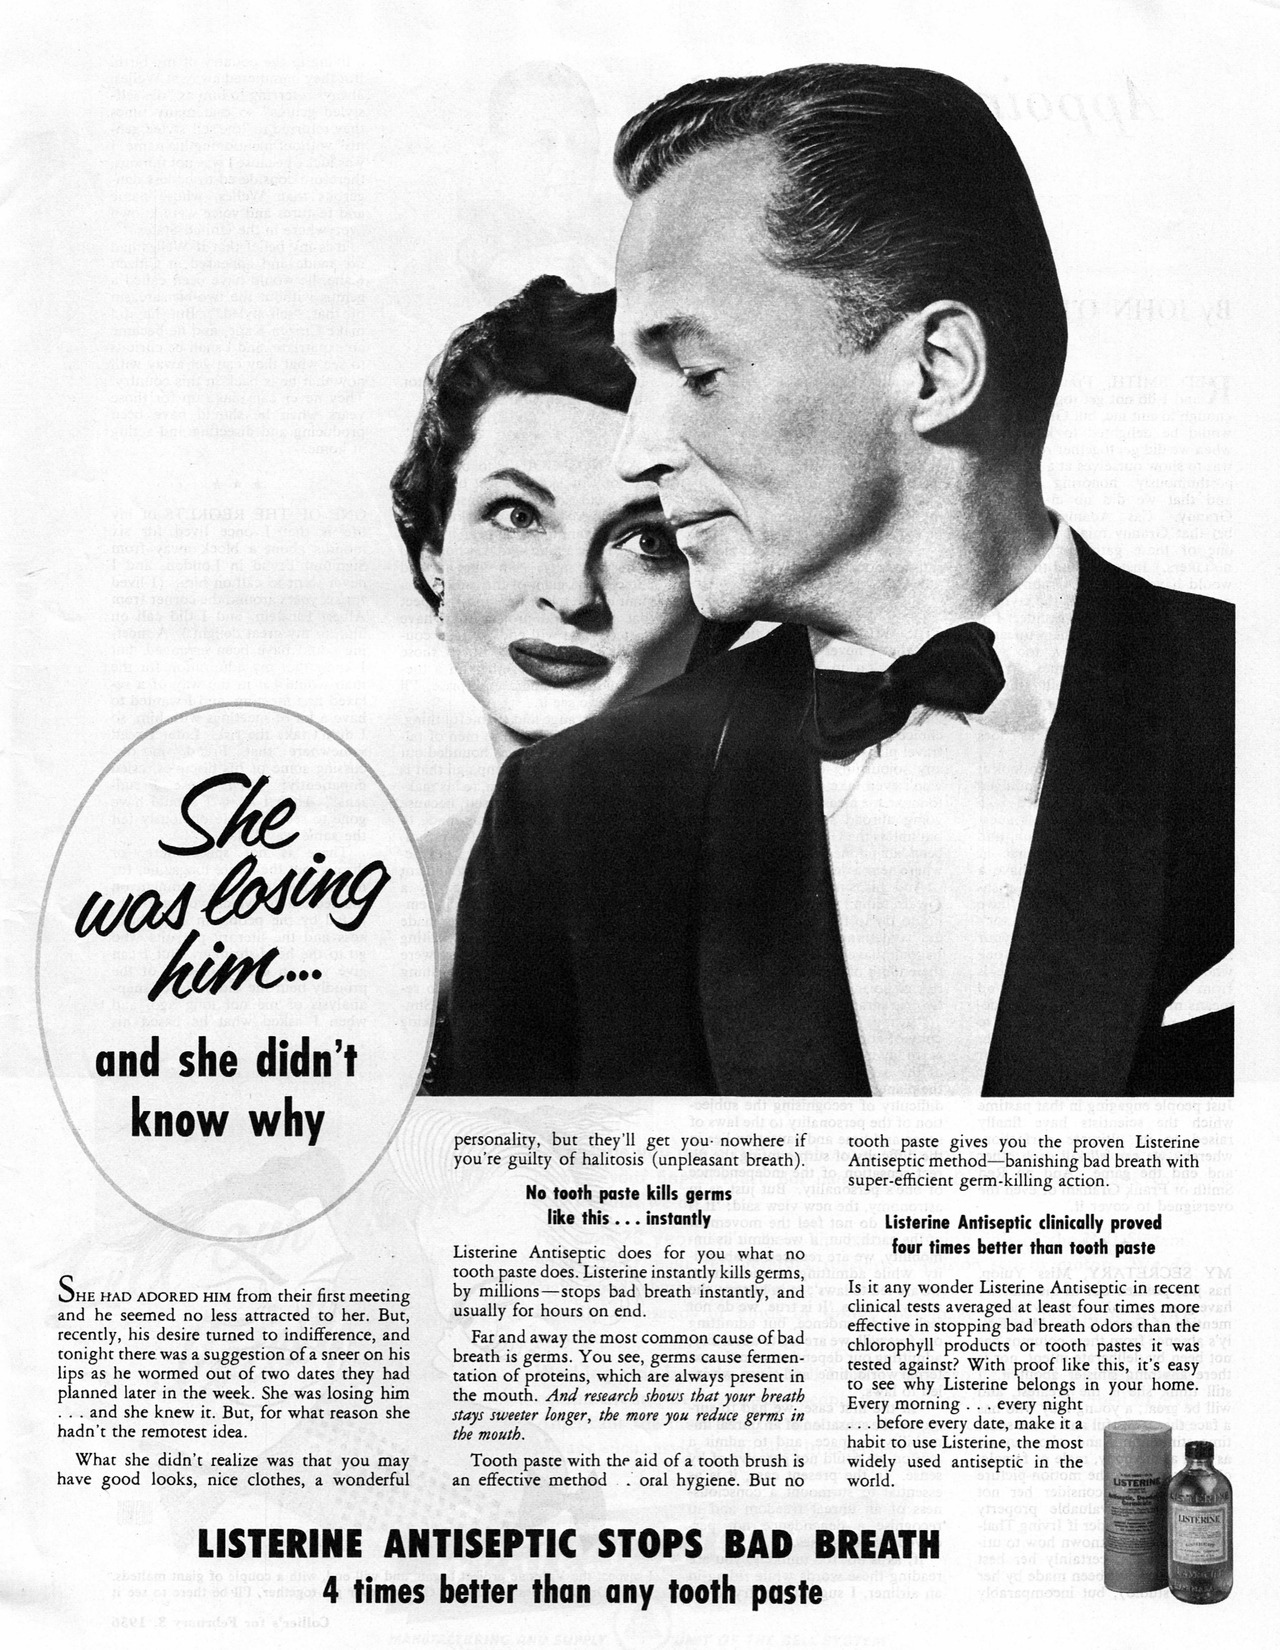 """She was losing him… and she didn't know why"" Listerine, 1956"